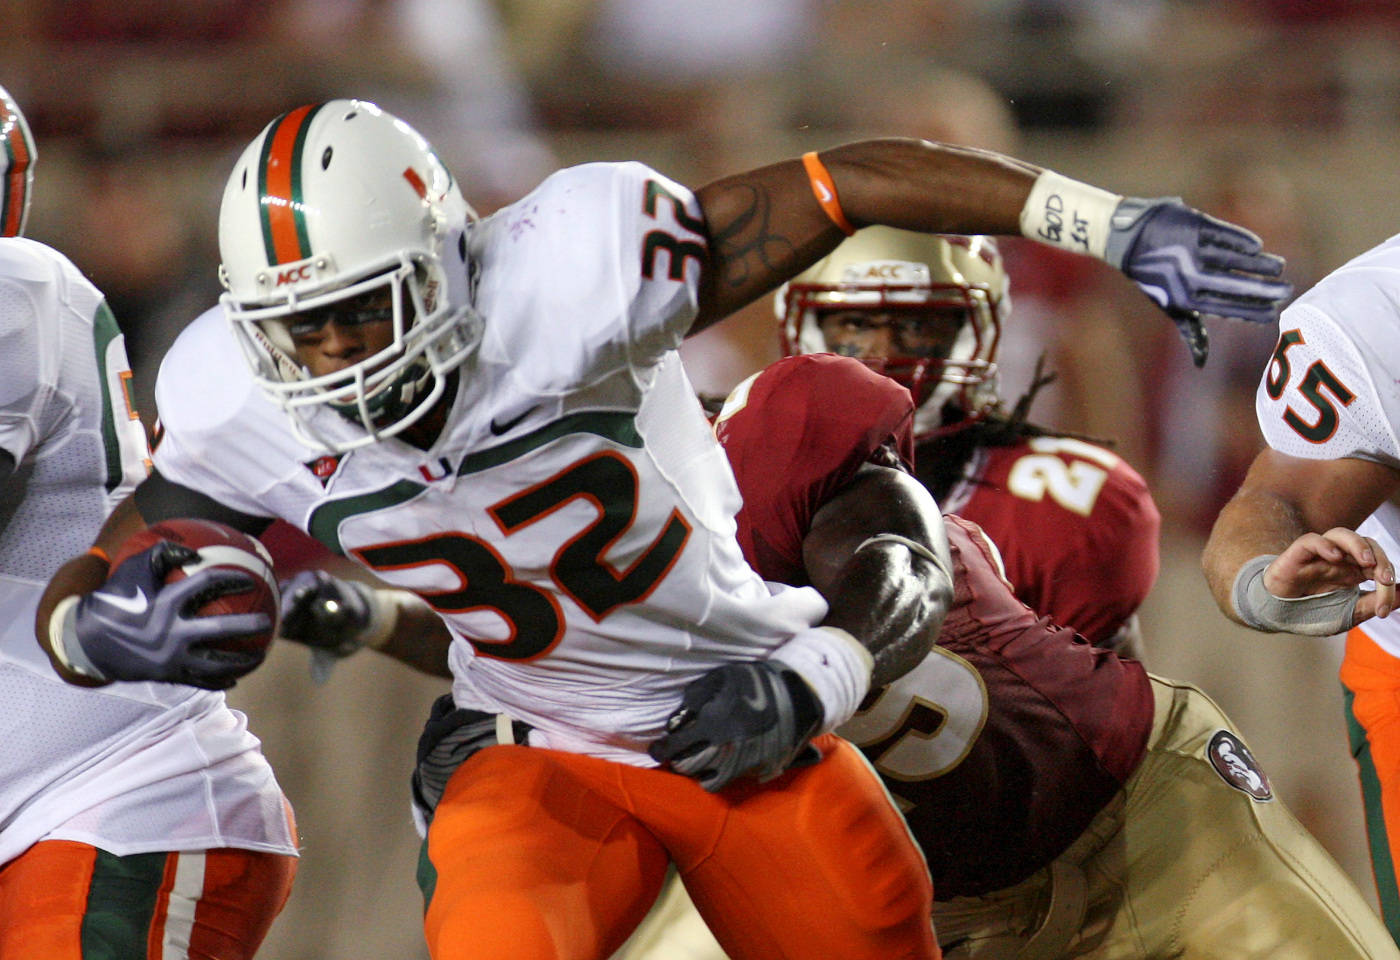 Miami running back Lee Chambers, left, tries to get away from Florida State linebacker Kendall Smith during the second quarter of an NCAA college football game Monday, Sept. 7, 2009, in Tallahassee, Fla.(AP Photo/Phil Coale)